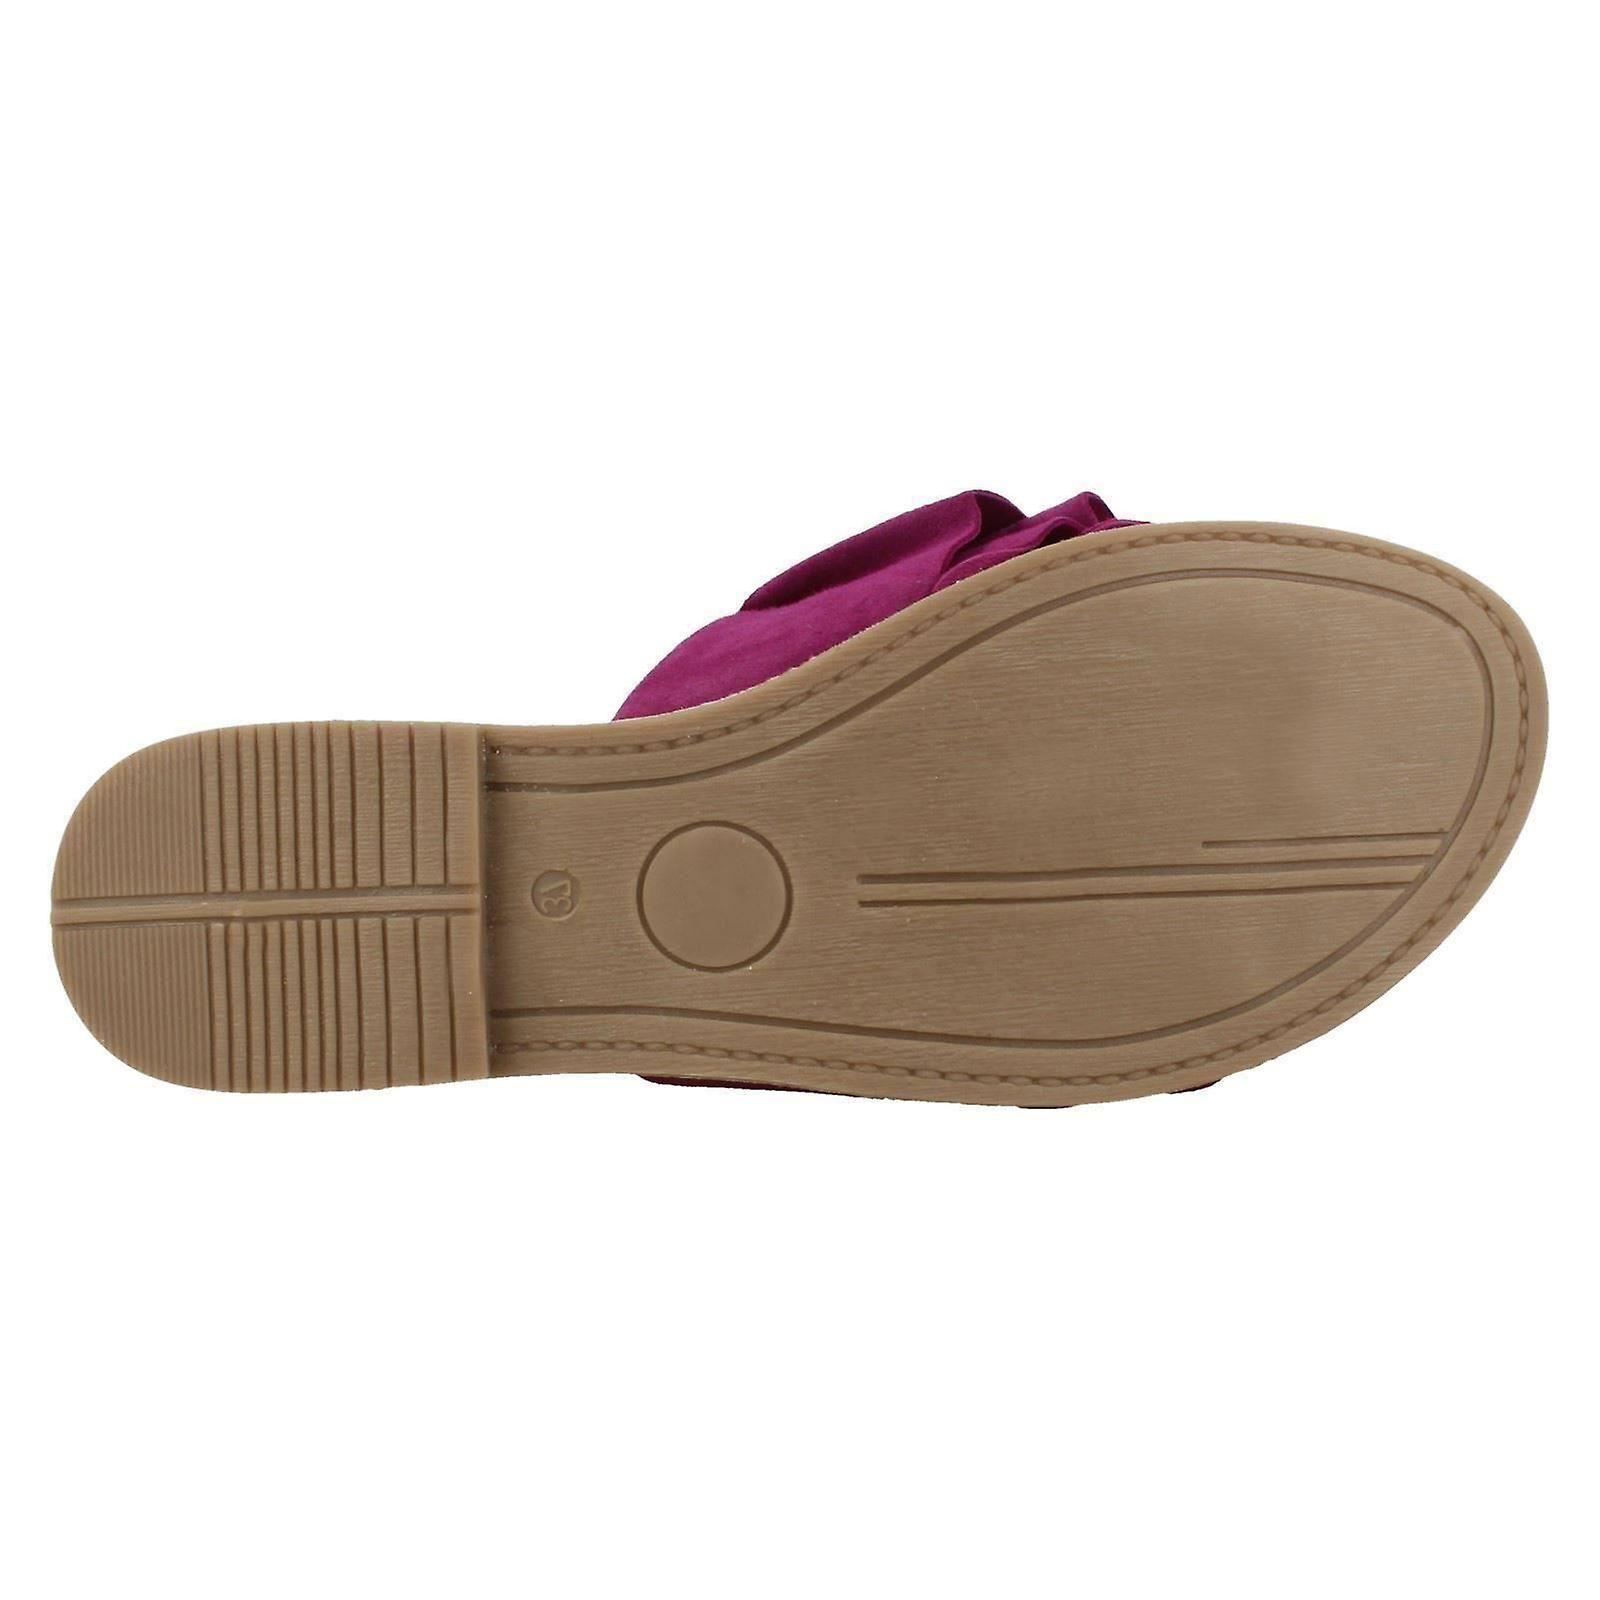 8 US Size Leather F00126 Collection UK Ladies Vamp Suede 10 Magenta Size Frill Mules EU 41 Size Leather nZxnAwBP